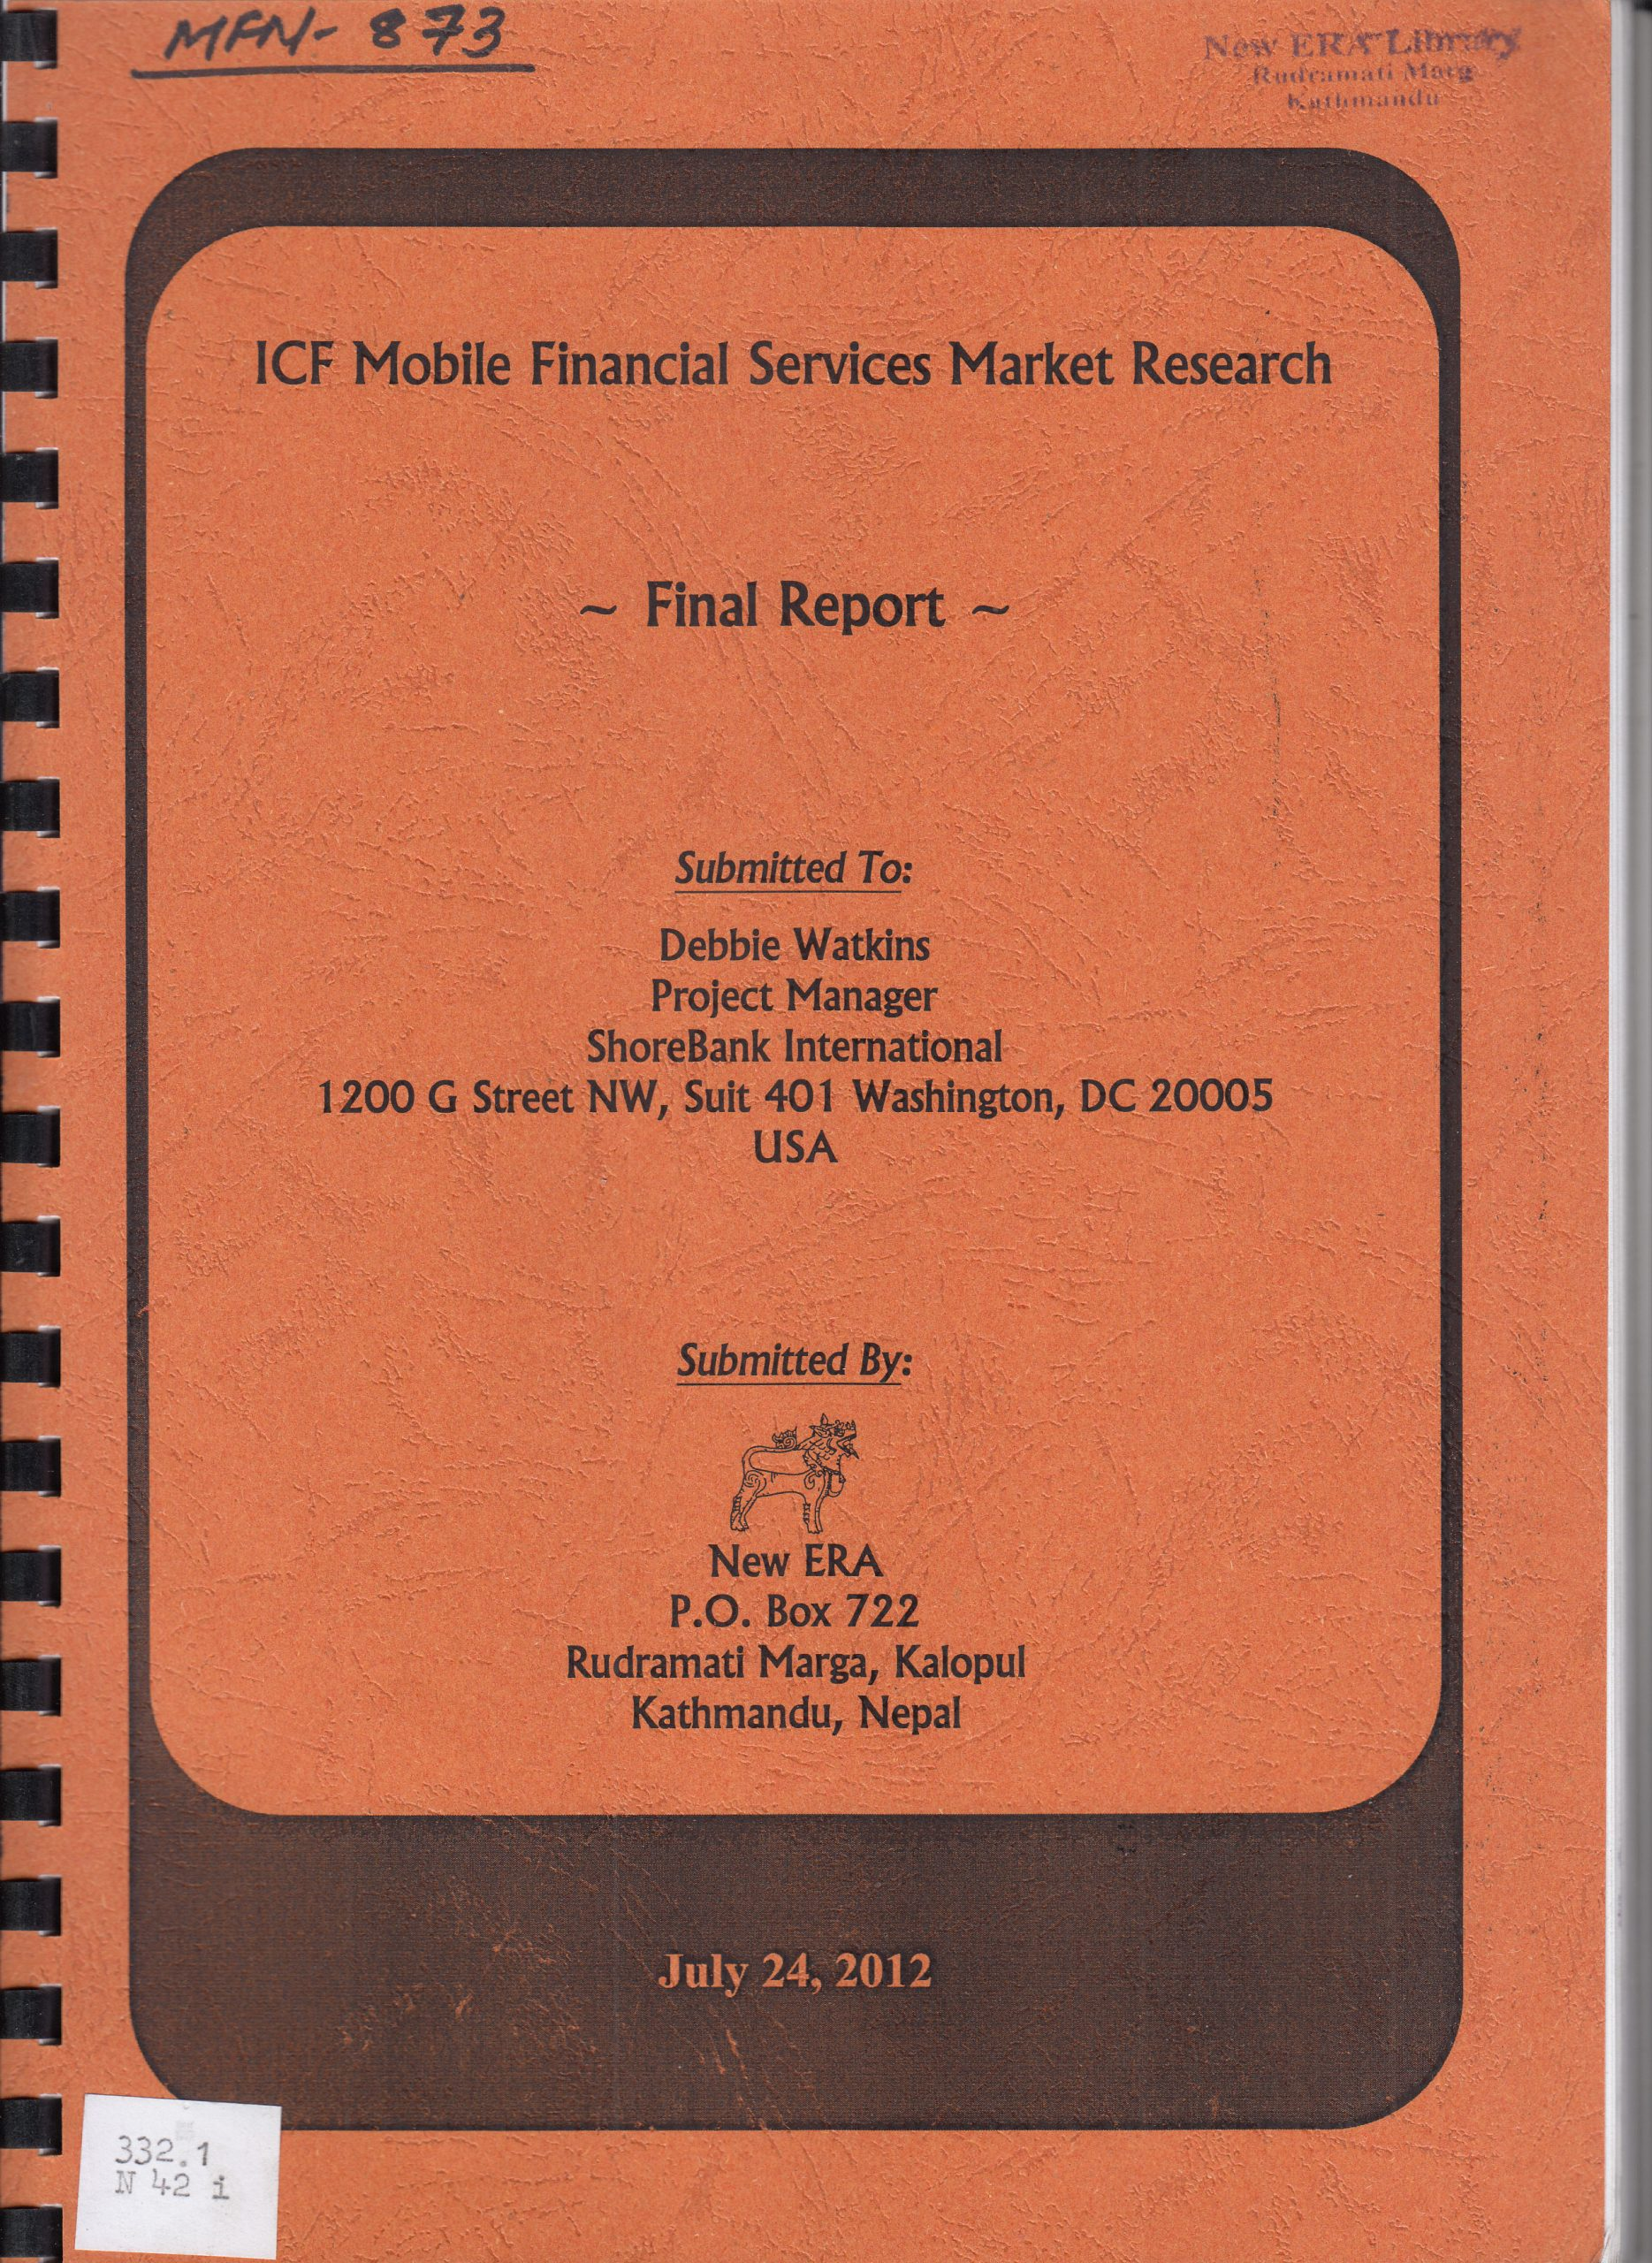 ICF Mobile Financial Services Market Research